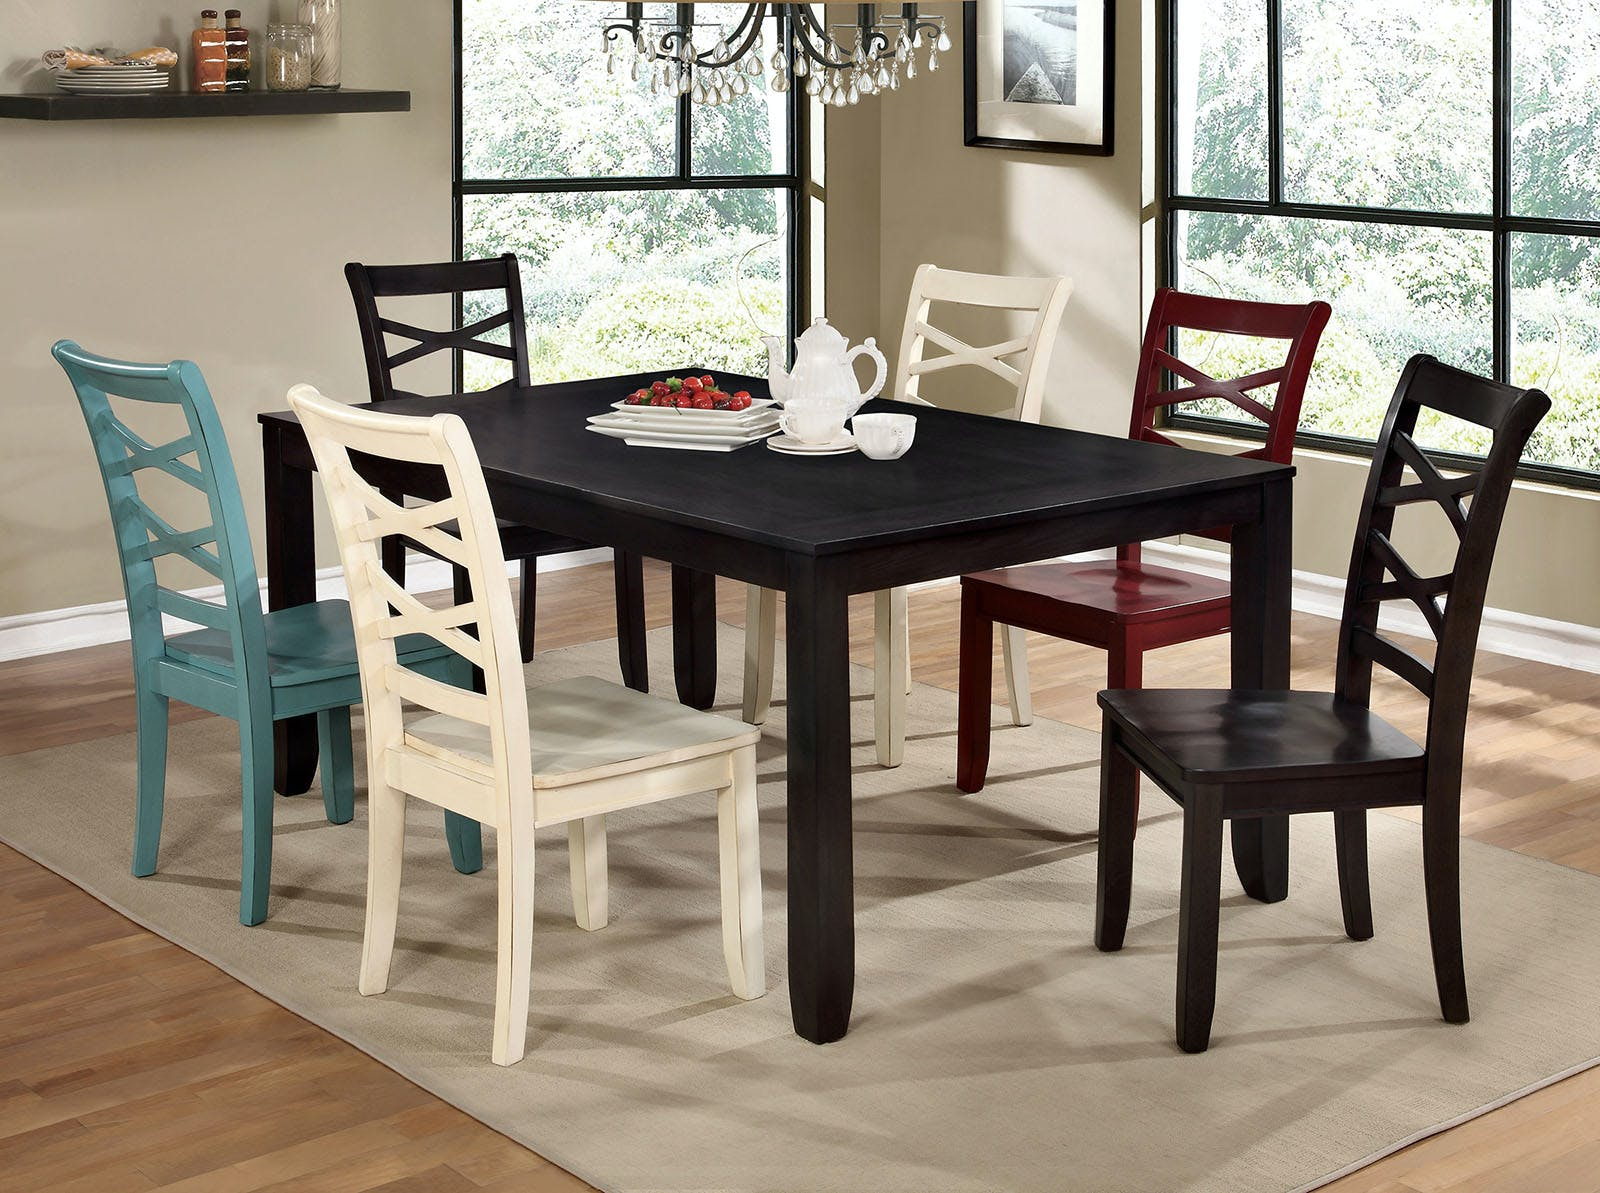 Picture of: Furniture Of America Dining Room Side Chair Espresso 2 Ctn Cm3528ex Sc 2pk The Furniture Mall